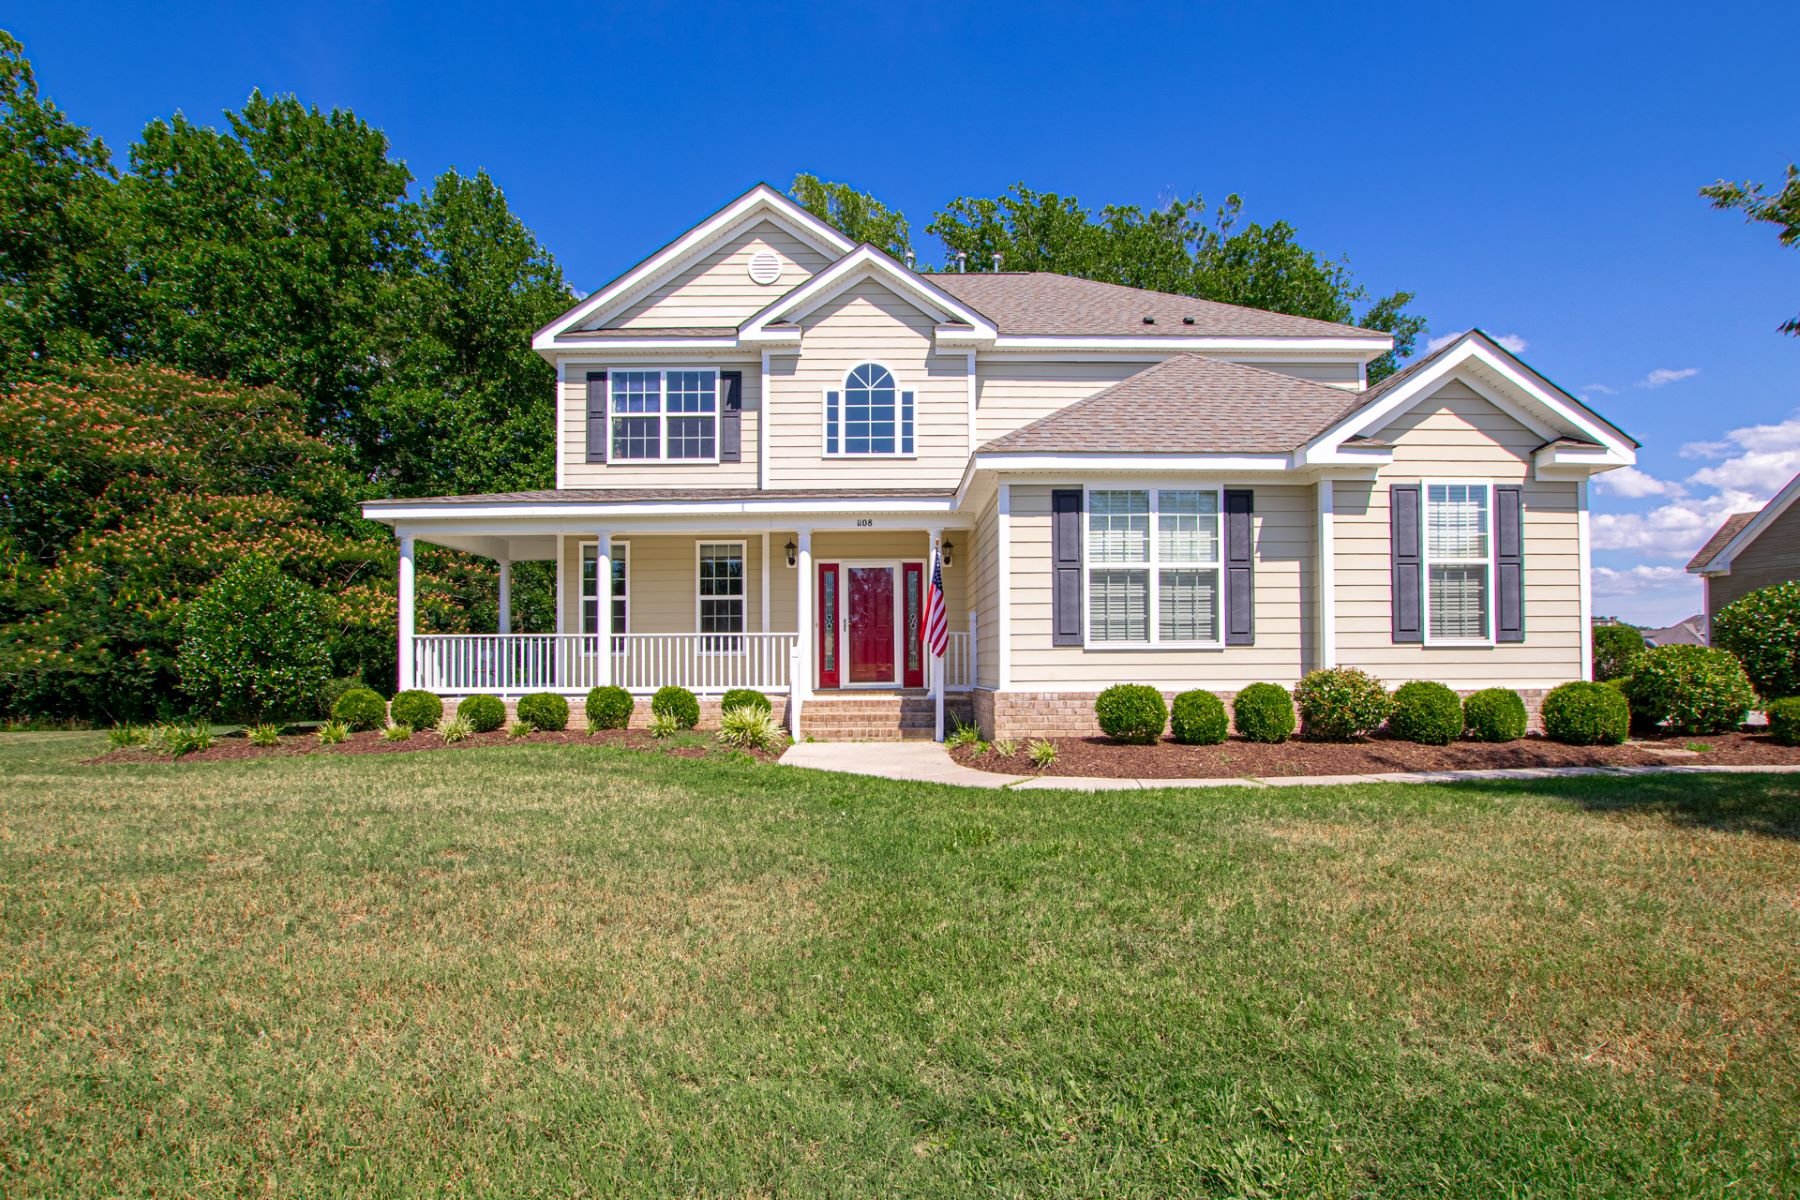 Single Family Homes for Active at HERONS POINT 1108 White Herons Lane Suffolk, Virginia 23434 United States